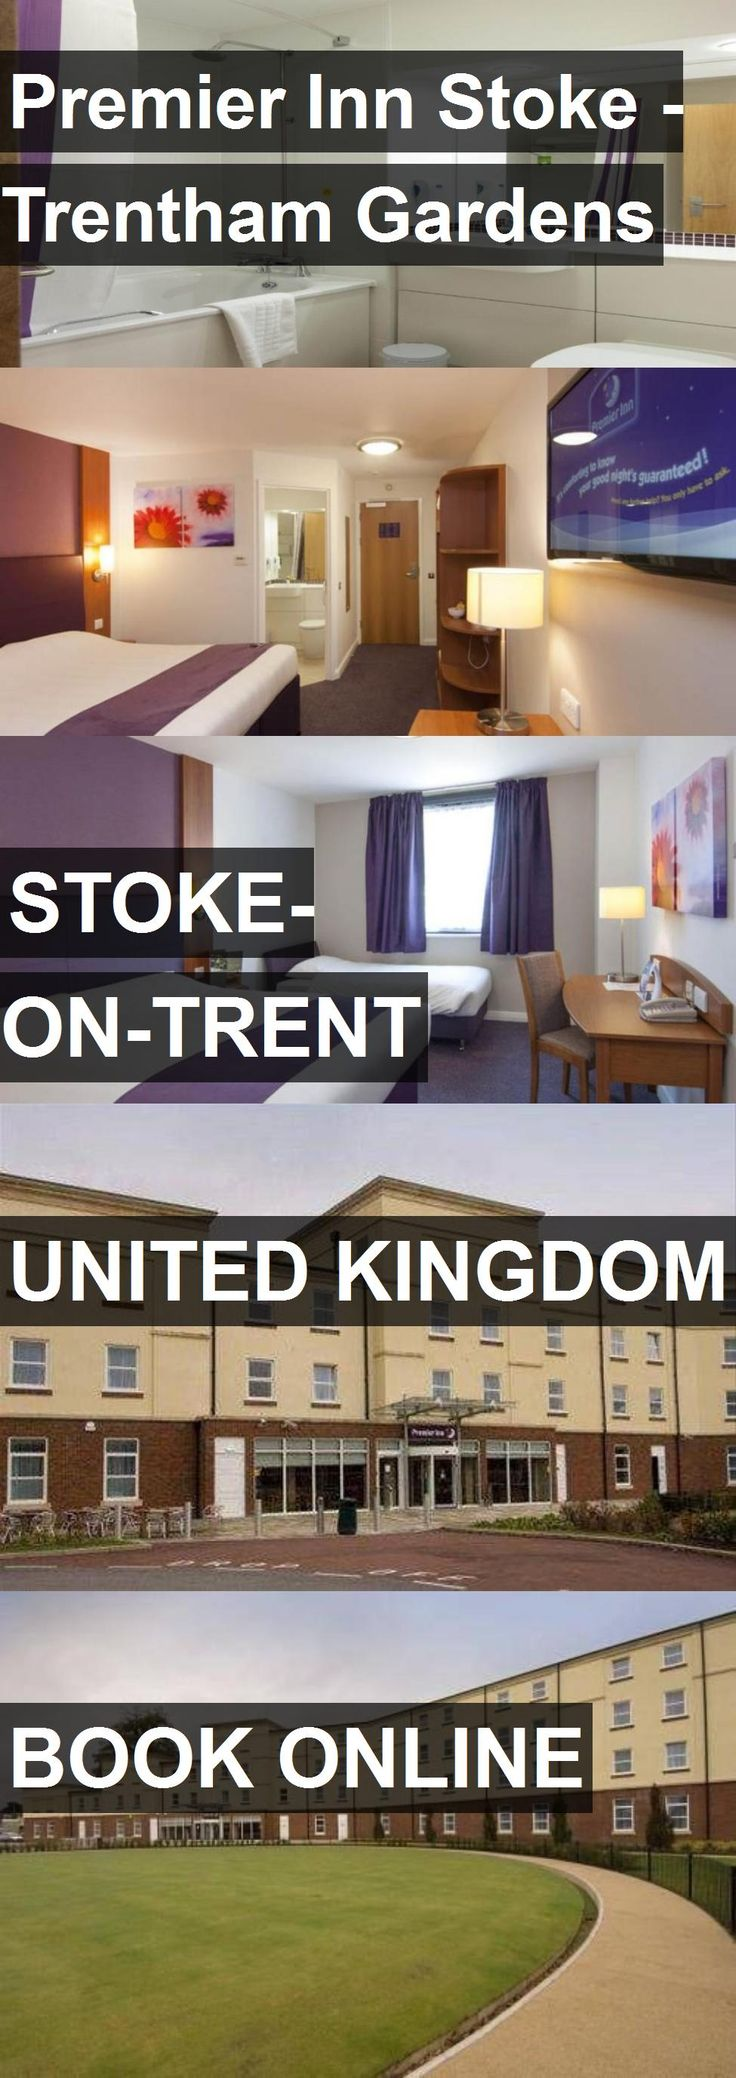 Hotel Premier Inn Stoke - Trentham Gardens in Stoke-On-Trent, United Kingdom. For more information, photos, reviews and best prices please follow the link. #UnitedKingdom #Stoke-On-Trent #PremierInnStoke-TrenthamGardens #hotel #travel #vacation